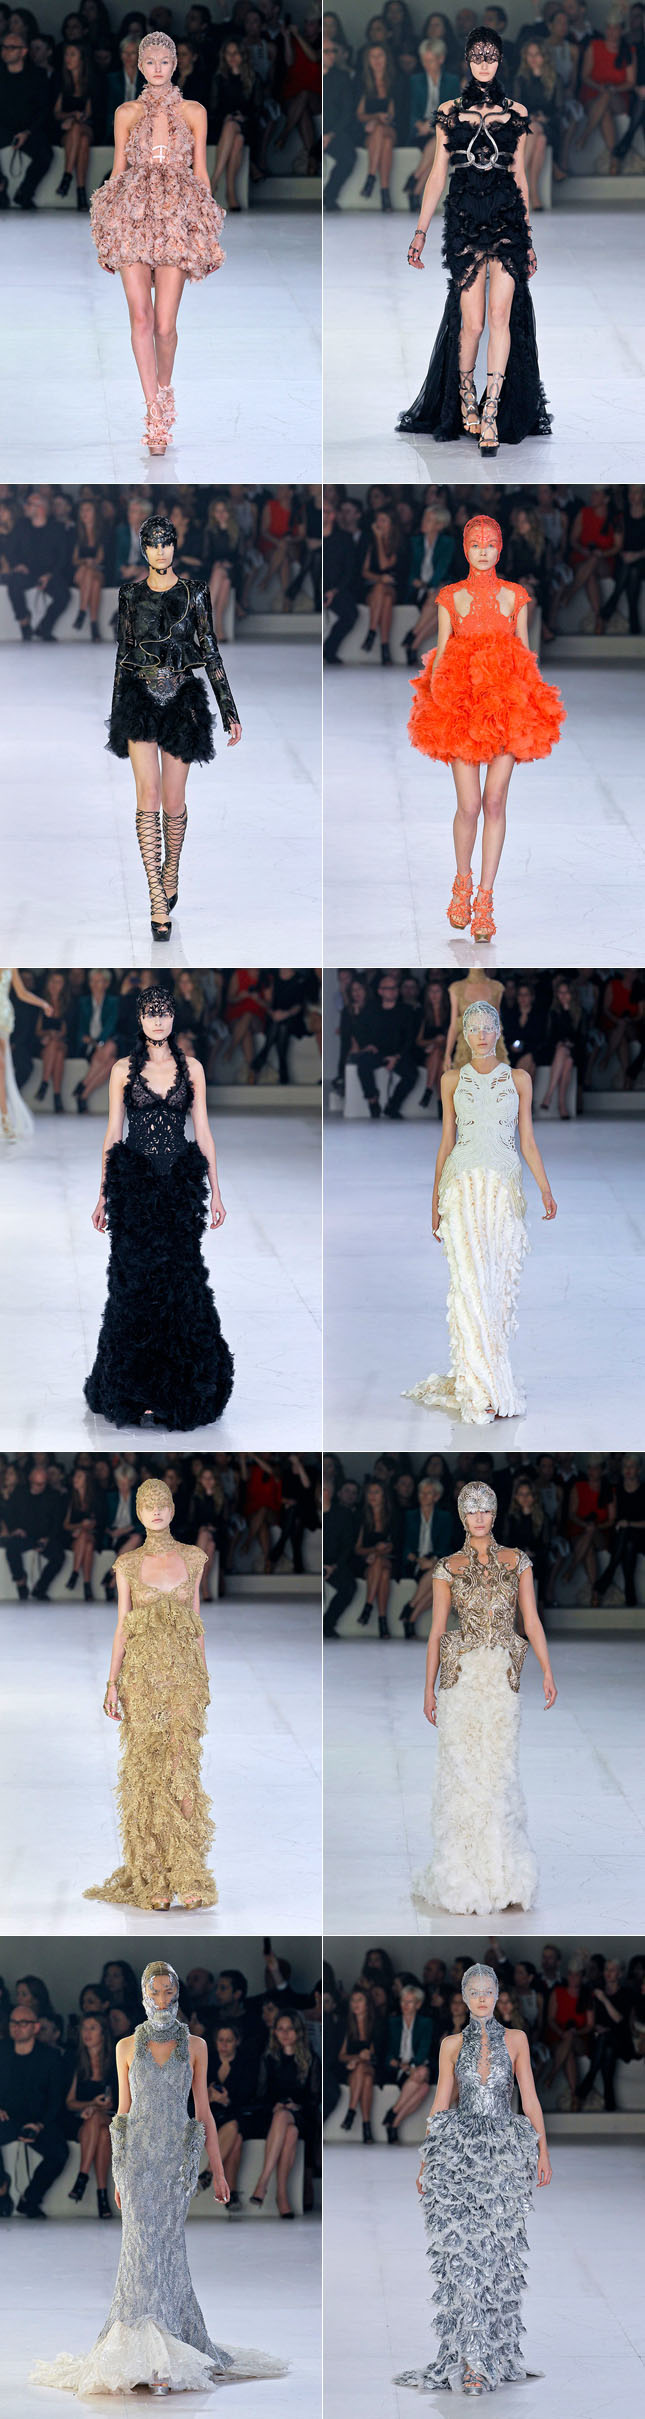 Alexander McQueen Verão 2012 Paris Fashion Week Desfile PFW